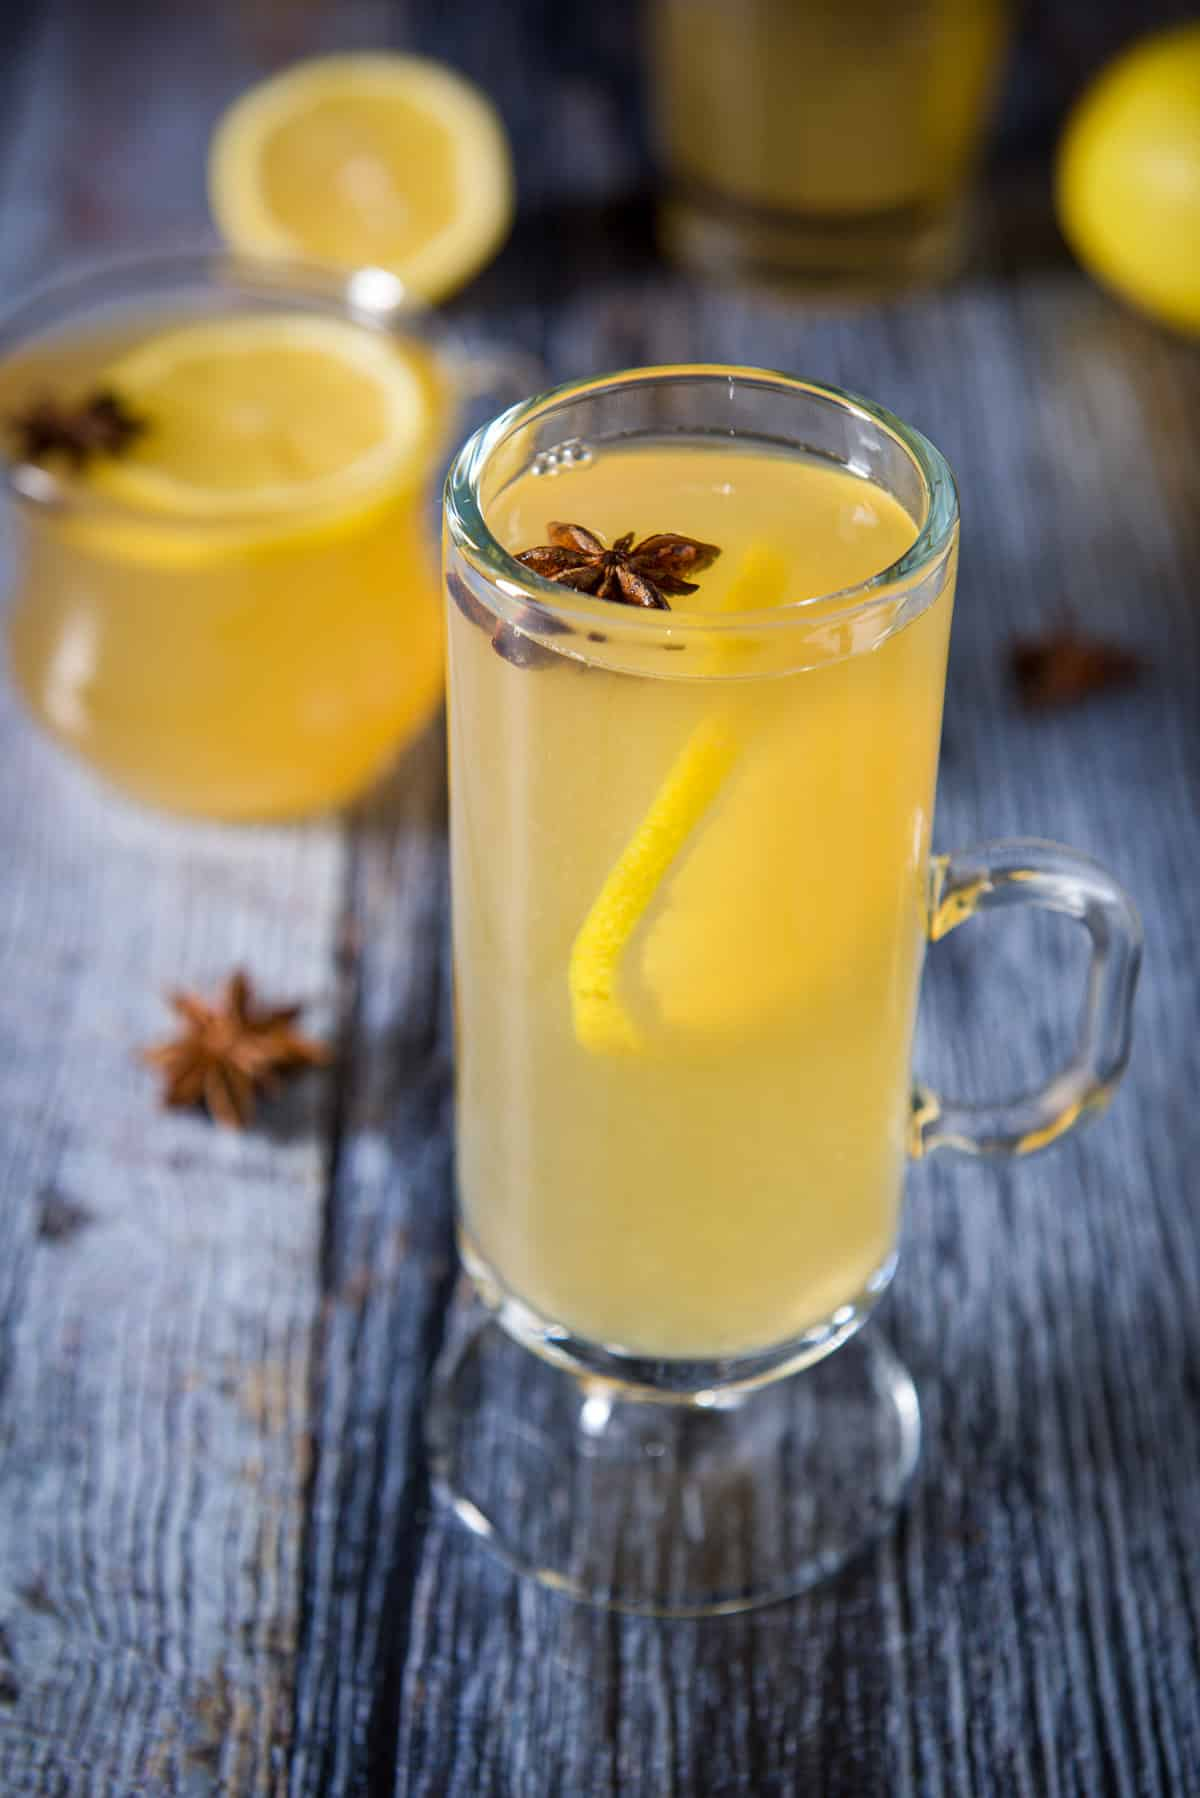 A tall glass mug with the golden cocktail with the smaller mug in the background. The cocktails are garnished with star anise and lemon wheels